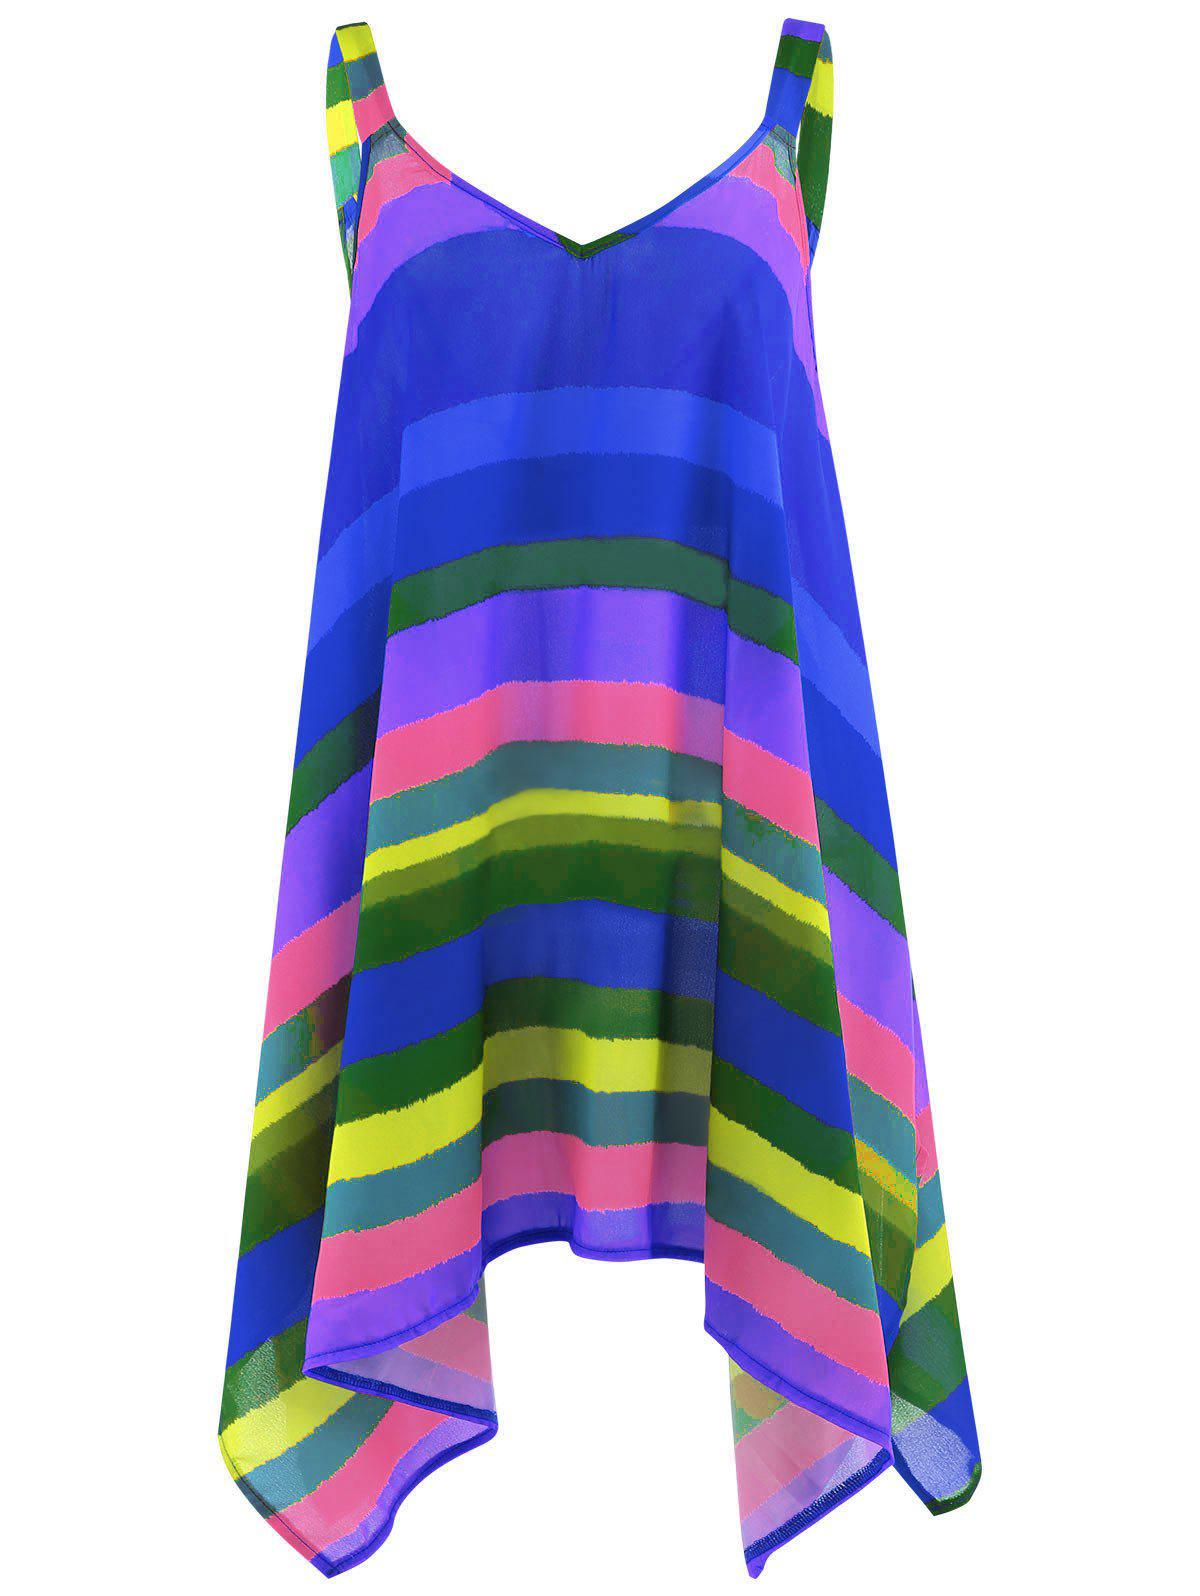 Plus Size Rainbow Striped Spaghetti Strap TopWOMEN<br><br>Size: 4XL; Color: BLUE; Material: Cotton Blends,Polyester; Fabric Type: Chiffon; Shirt Length: Long; Sleeve Length: Sleeveless; Collar: Spaghetti Strap; Style: Fashion; Season: Spring,Summer; Pattern Type: Striped; Weight: 0.1700kg; Package Contents: 1 x Top;